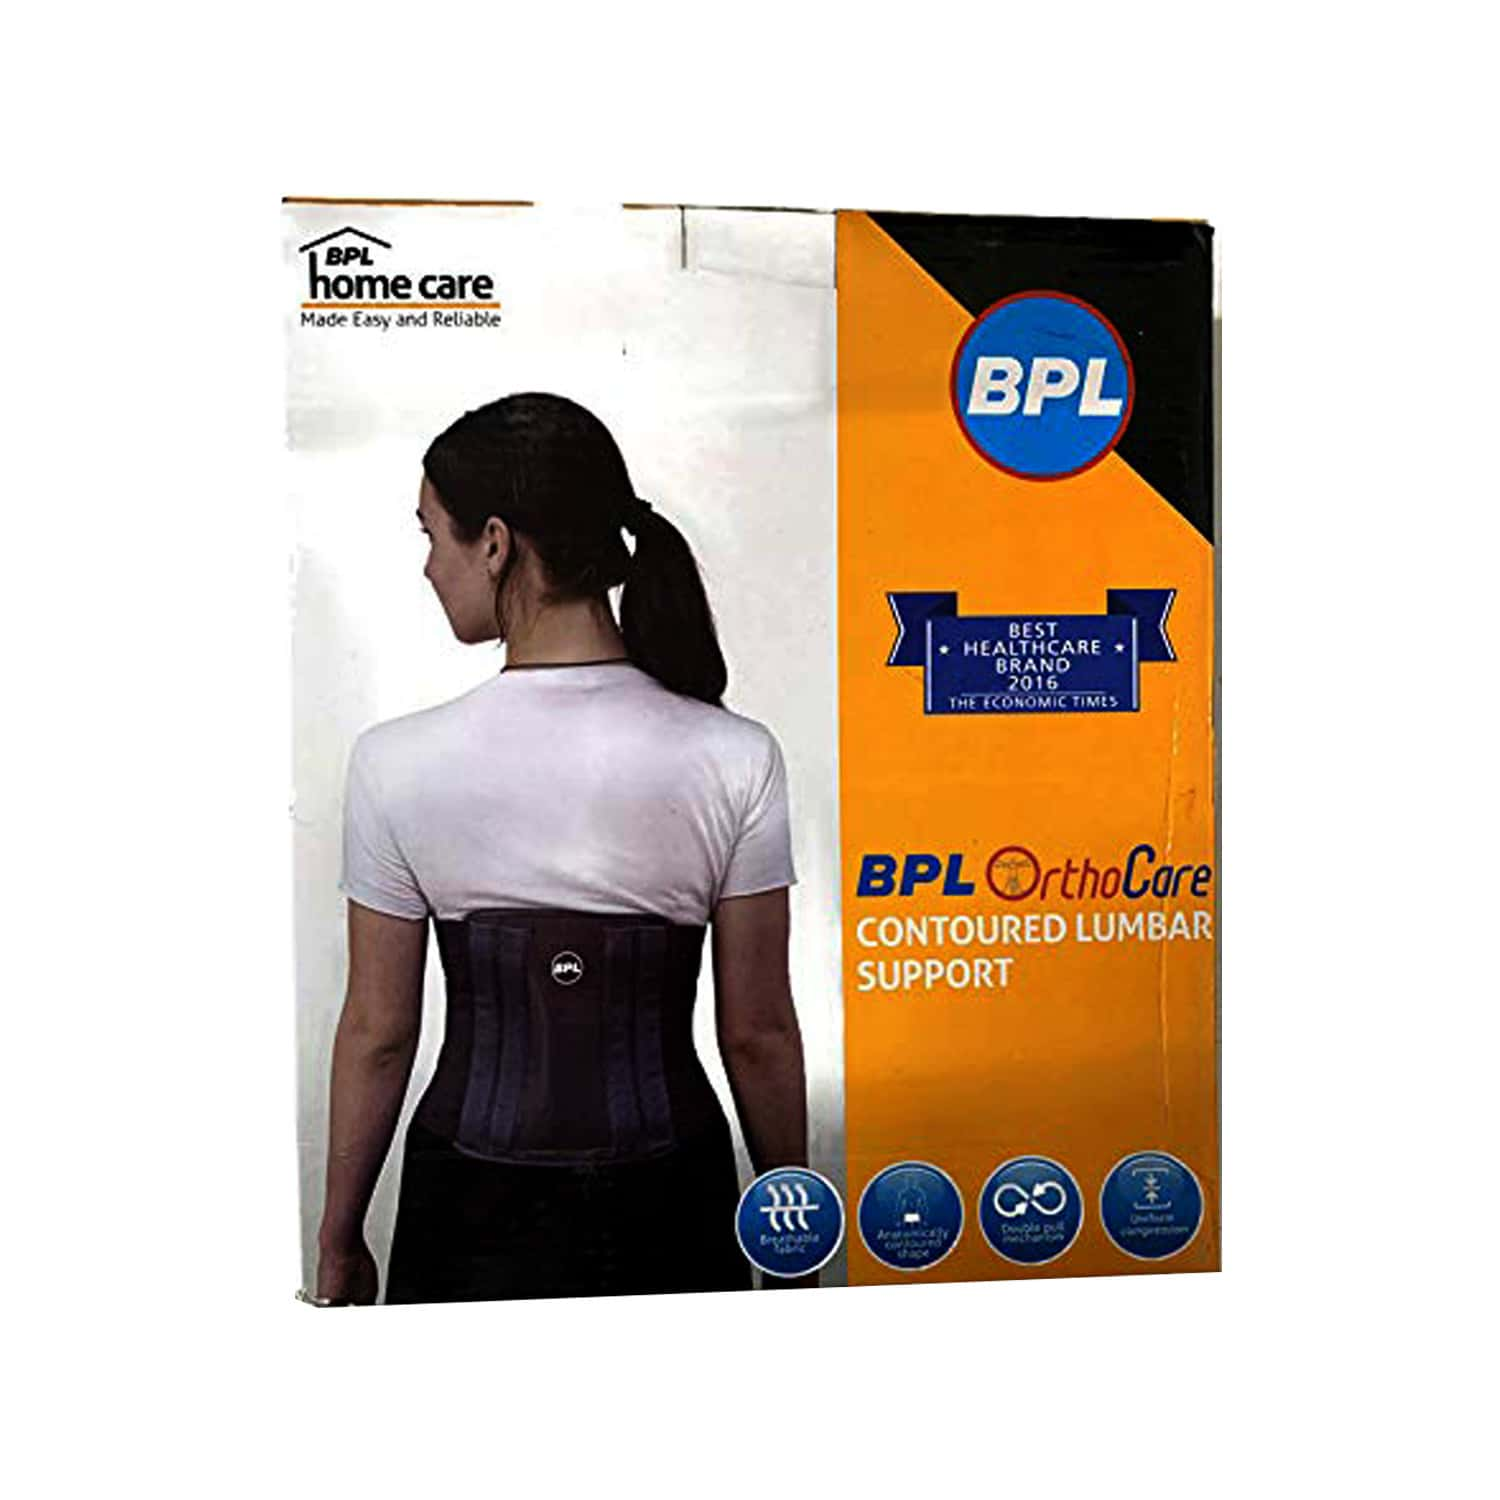 Bpl Orthocare Contoured Lumbar Support Grey - S - 1pc